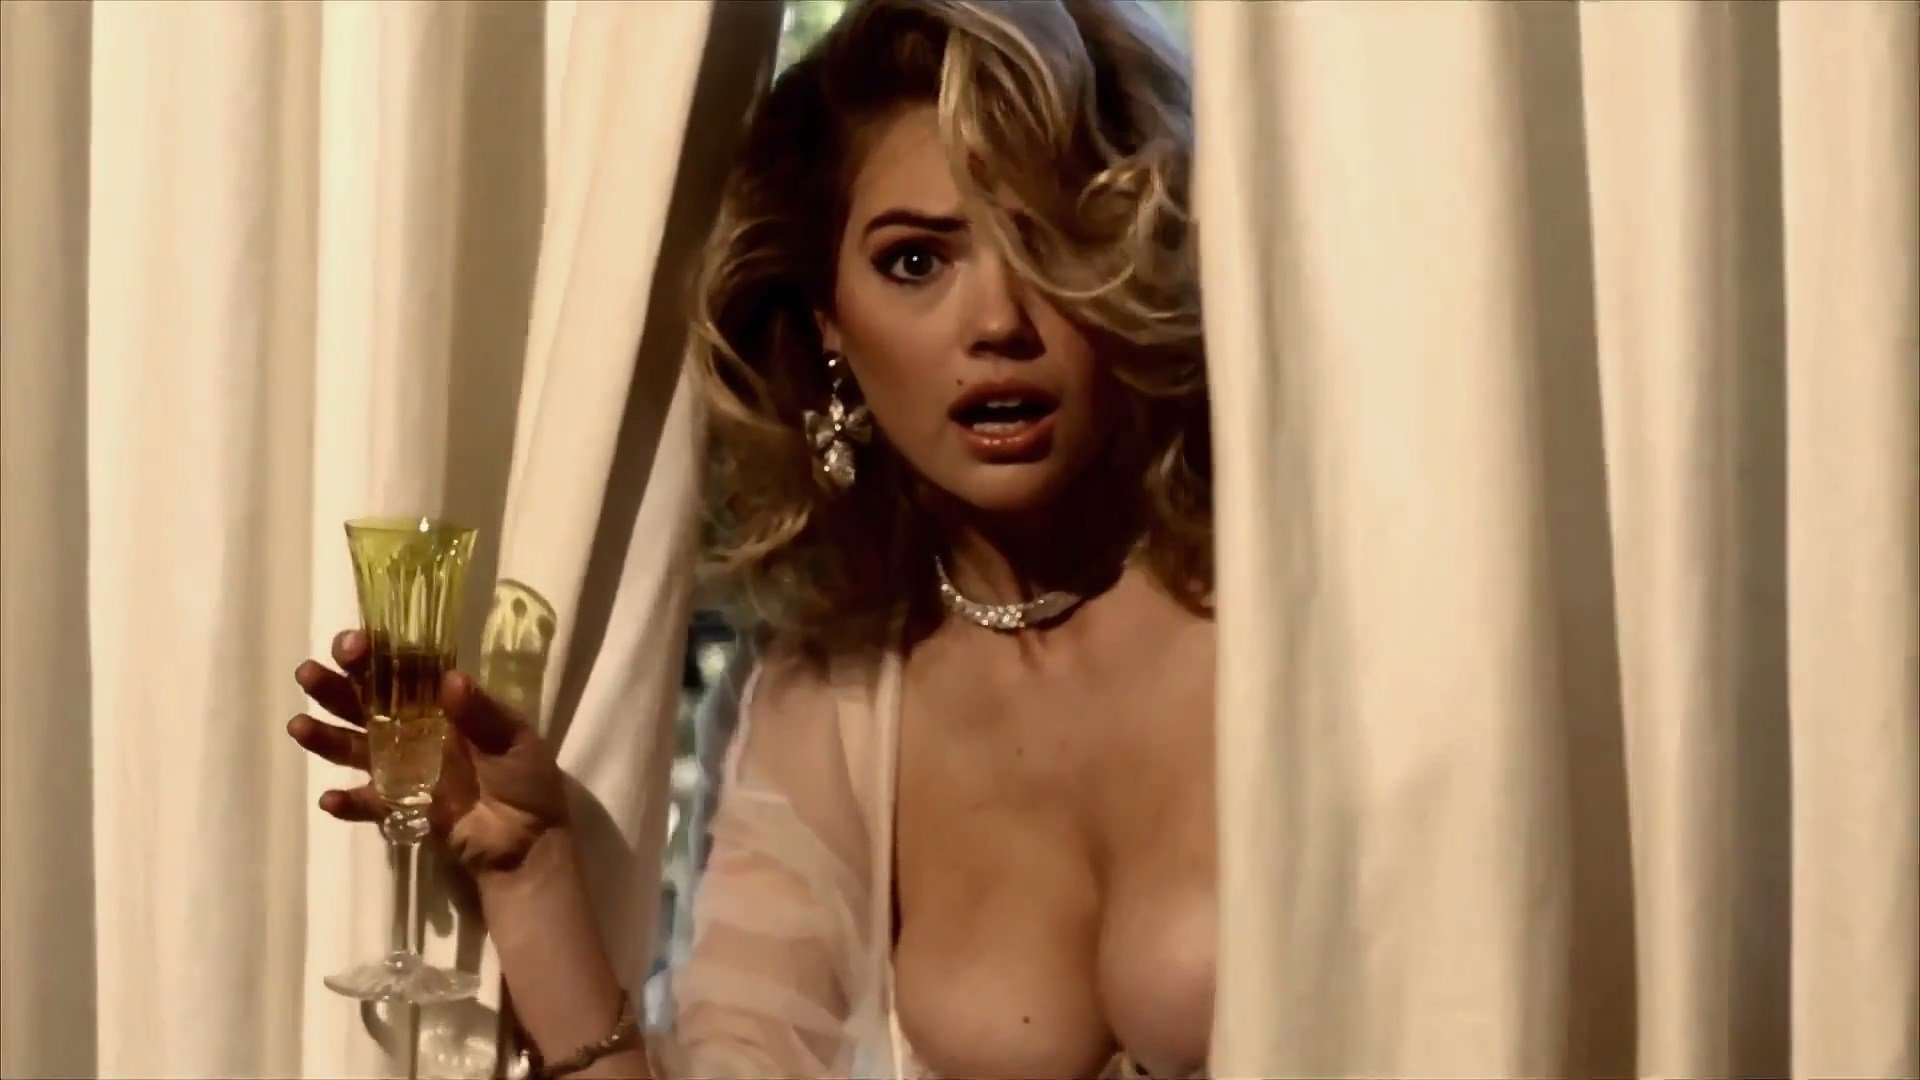 kate upton tits | #thefappening